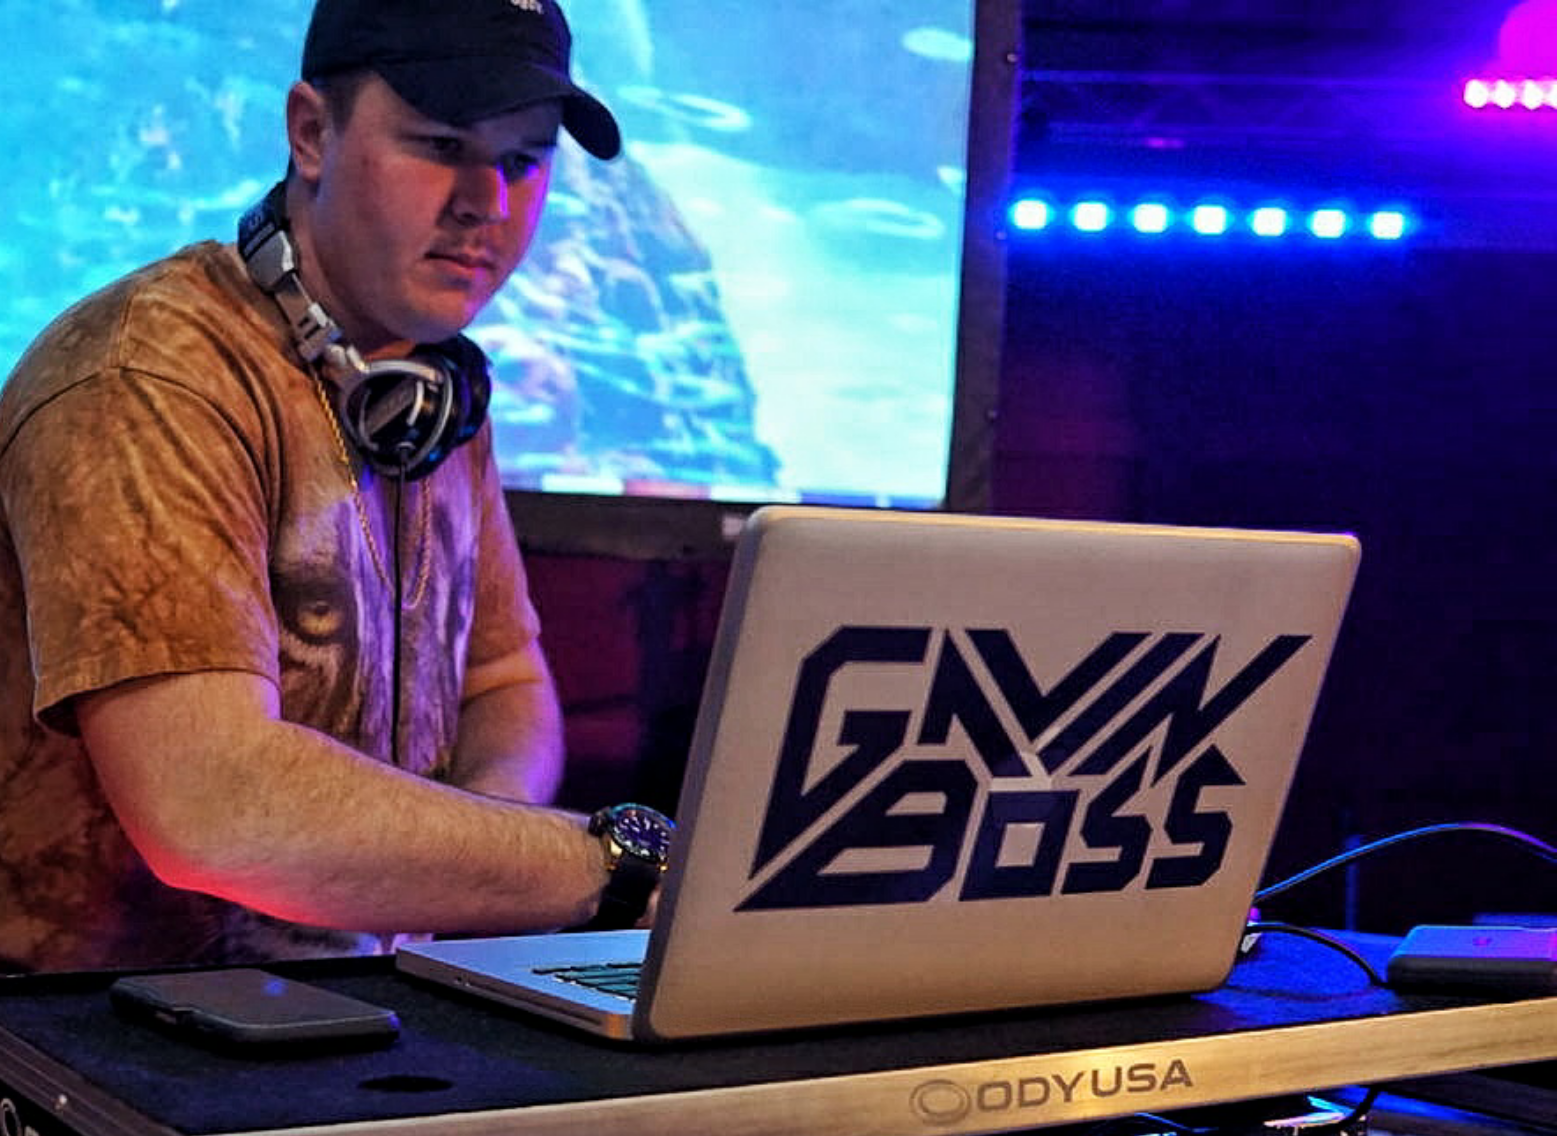 Boss on the stage at an Elysium event / Rico Ruos